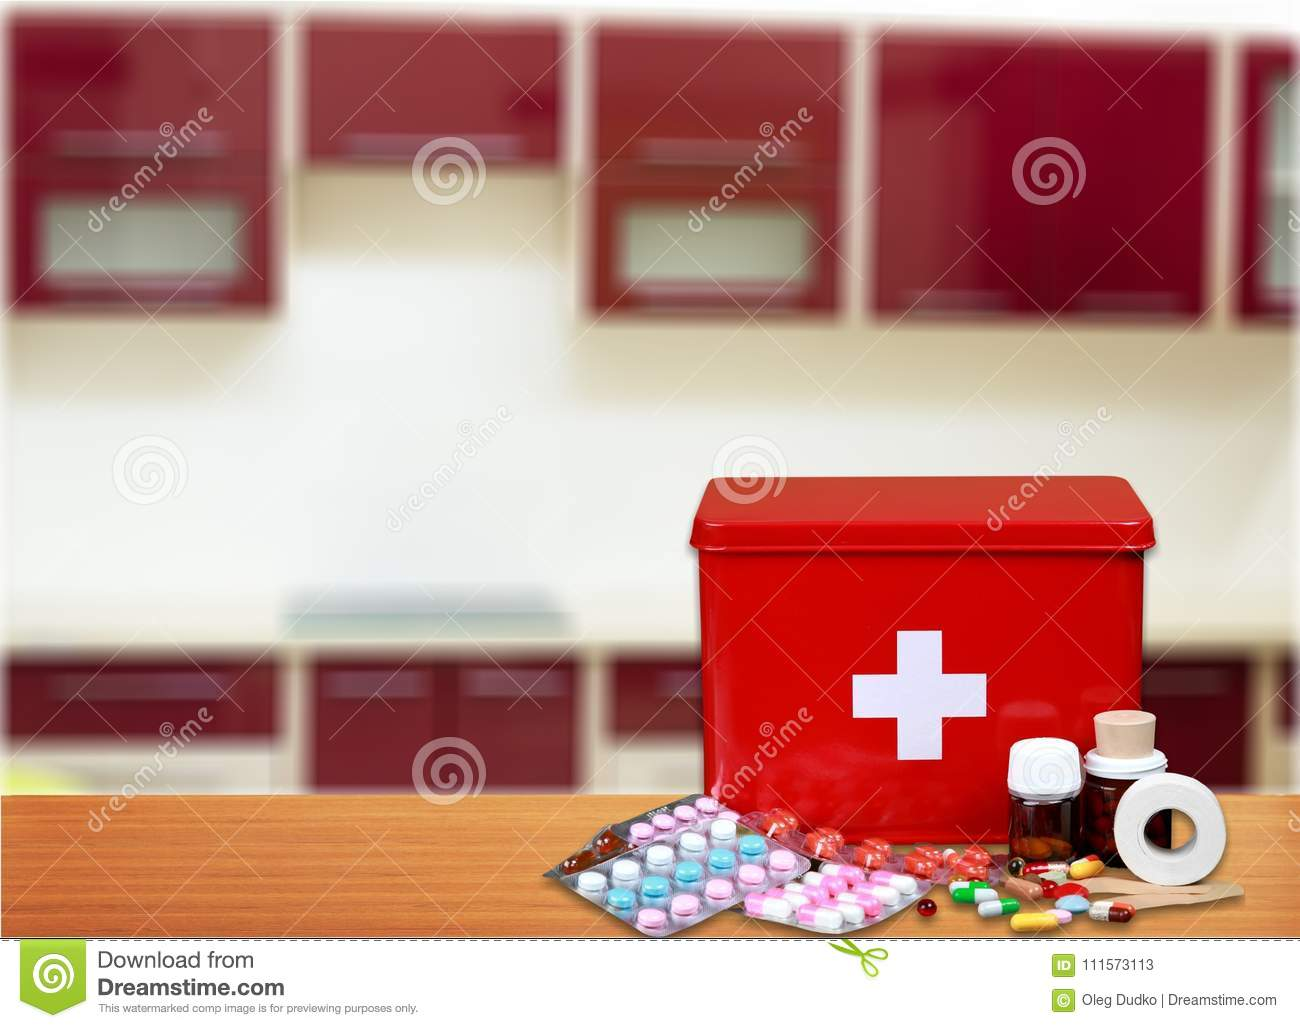 First Aid Kit With Medical Supplies Stock Image - Image of ...